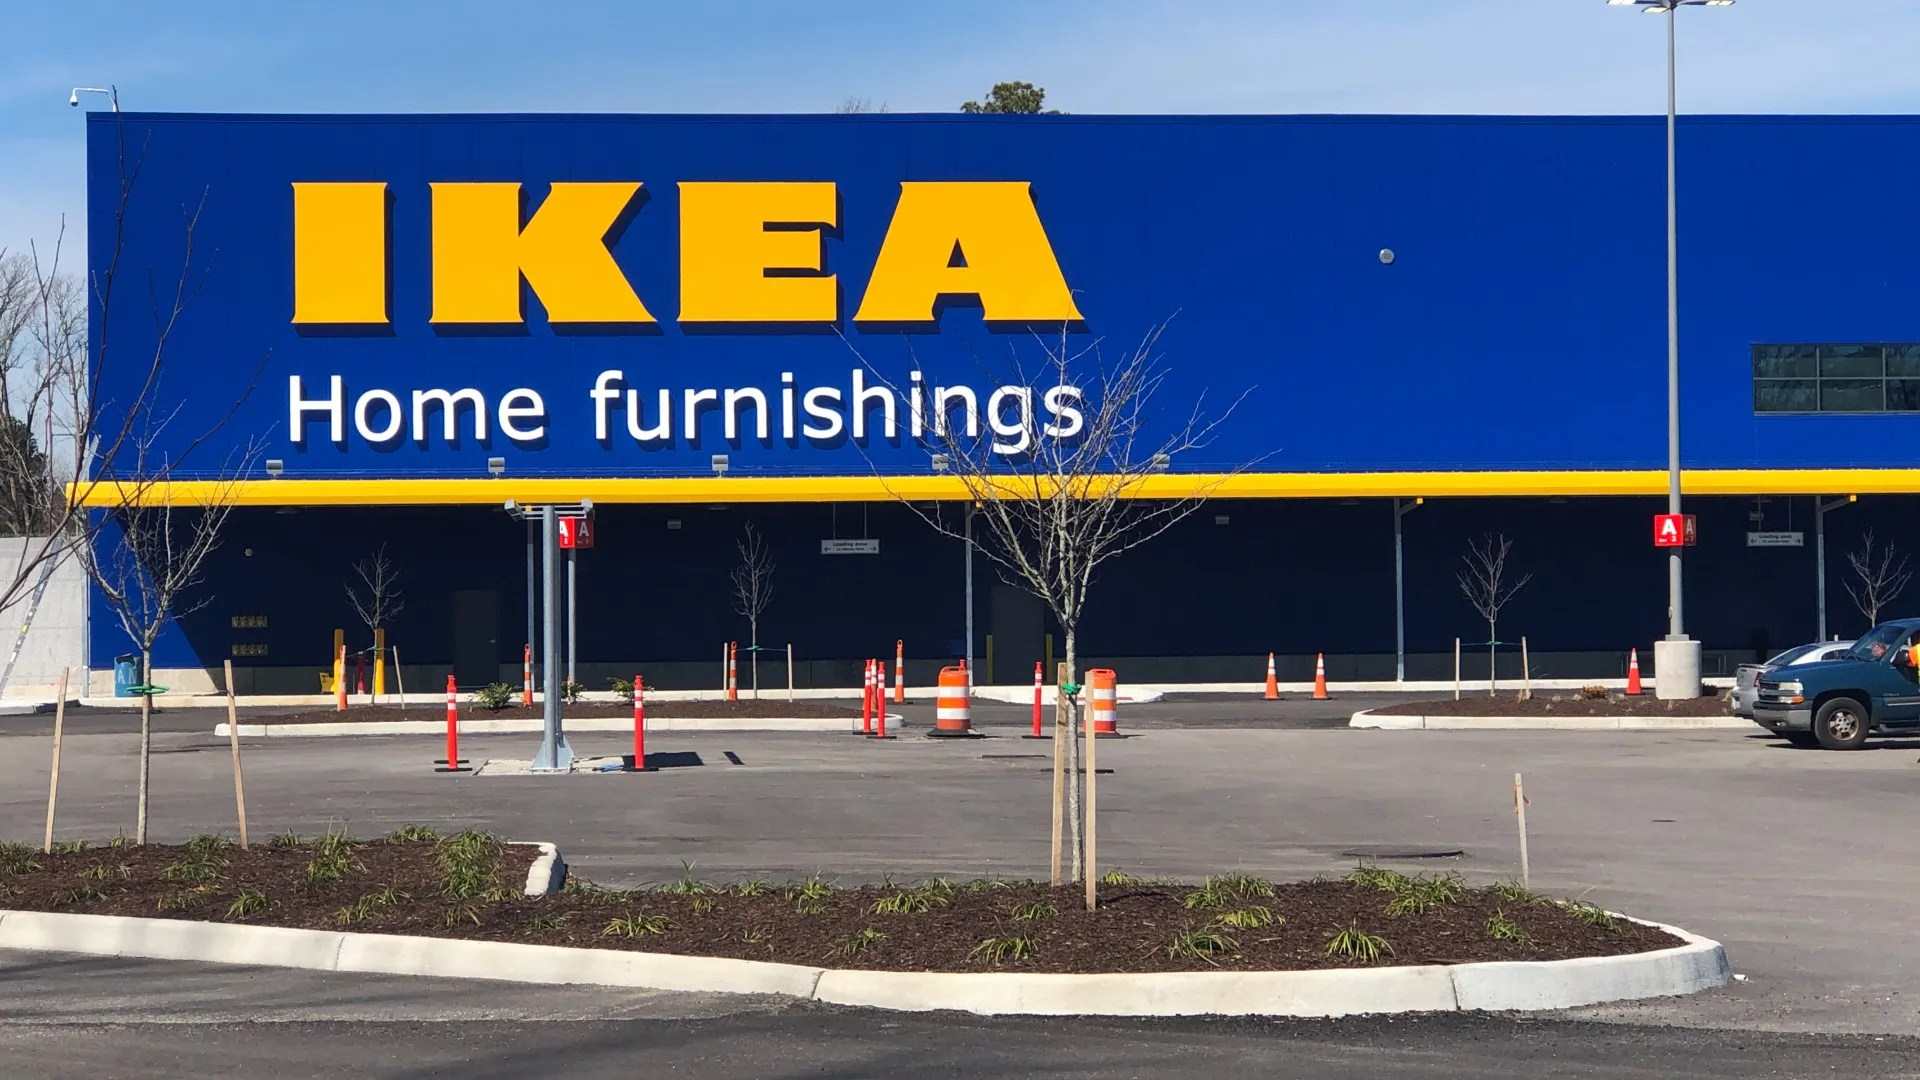 5 things you should never buy at ikea